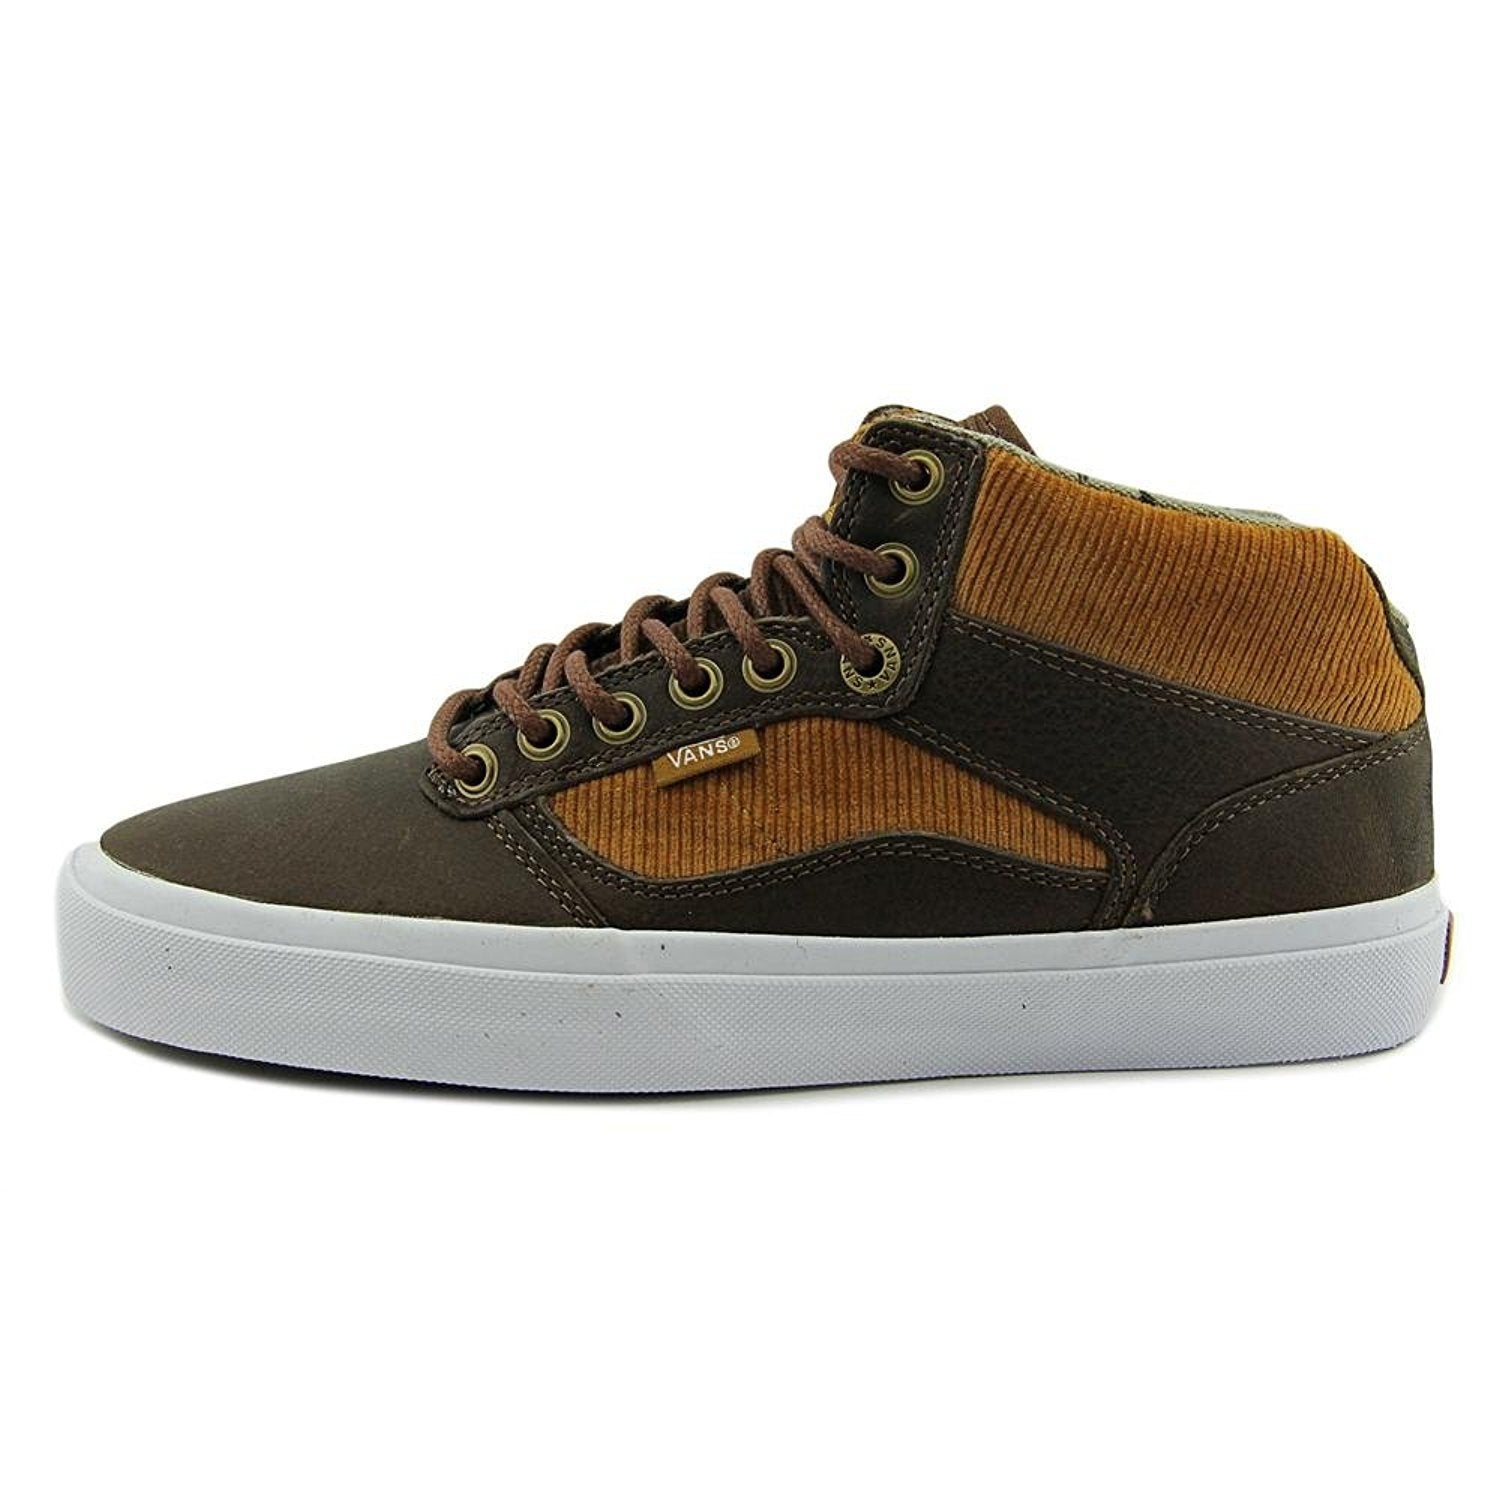 d7263787aa3ed9 Shop Vans Mens Bedford Low Top Lace Up Fashion Sneakers - Free ...